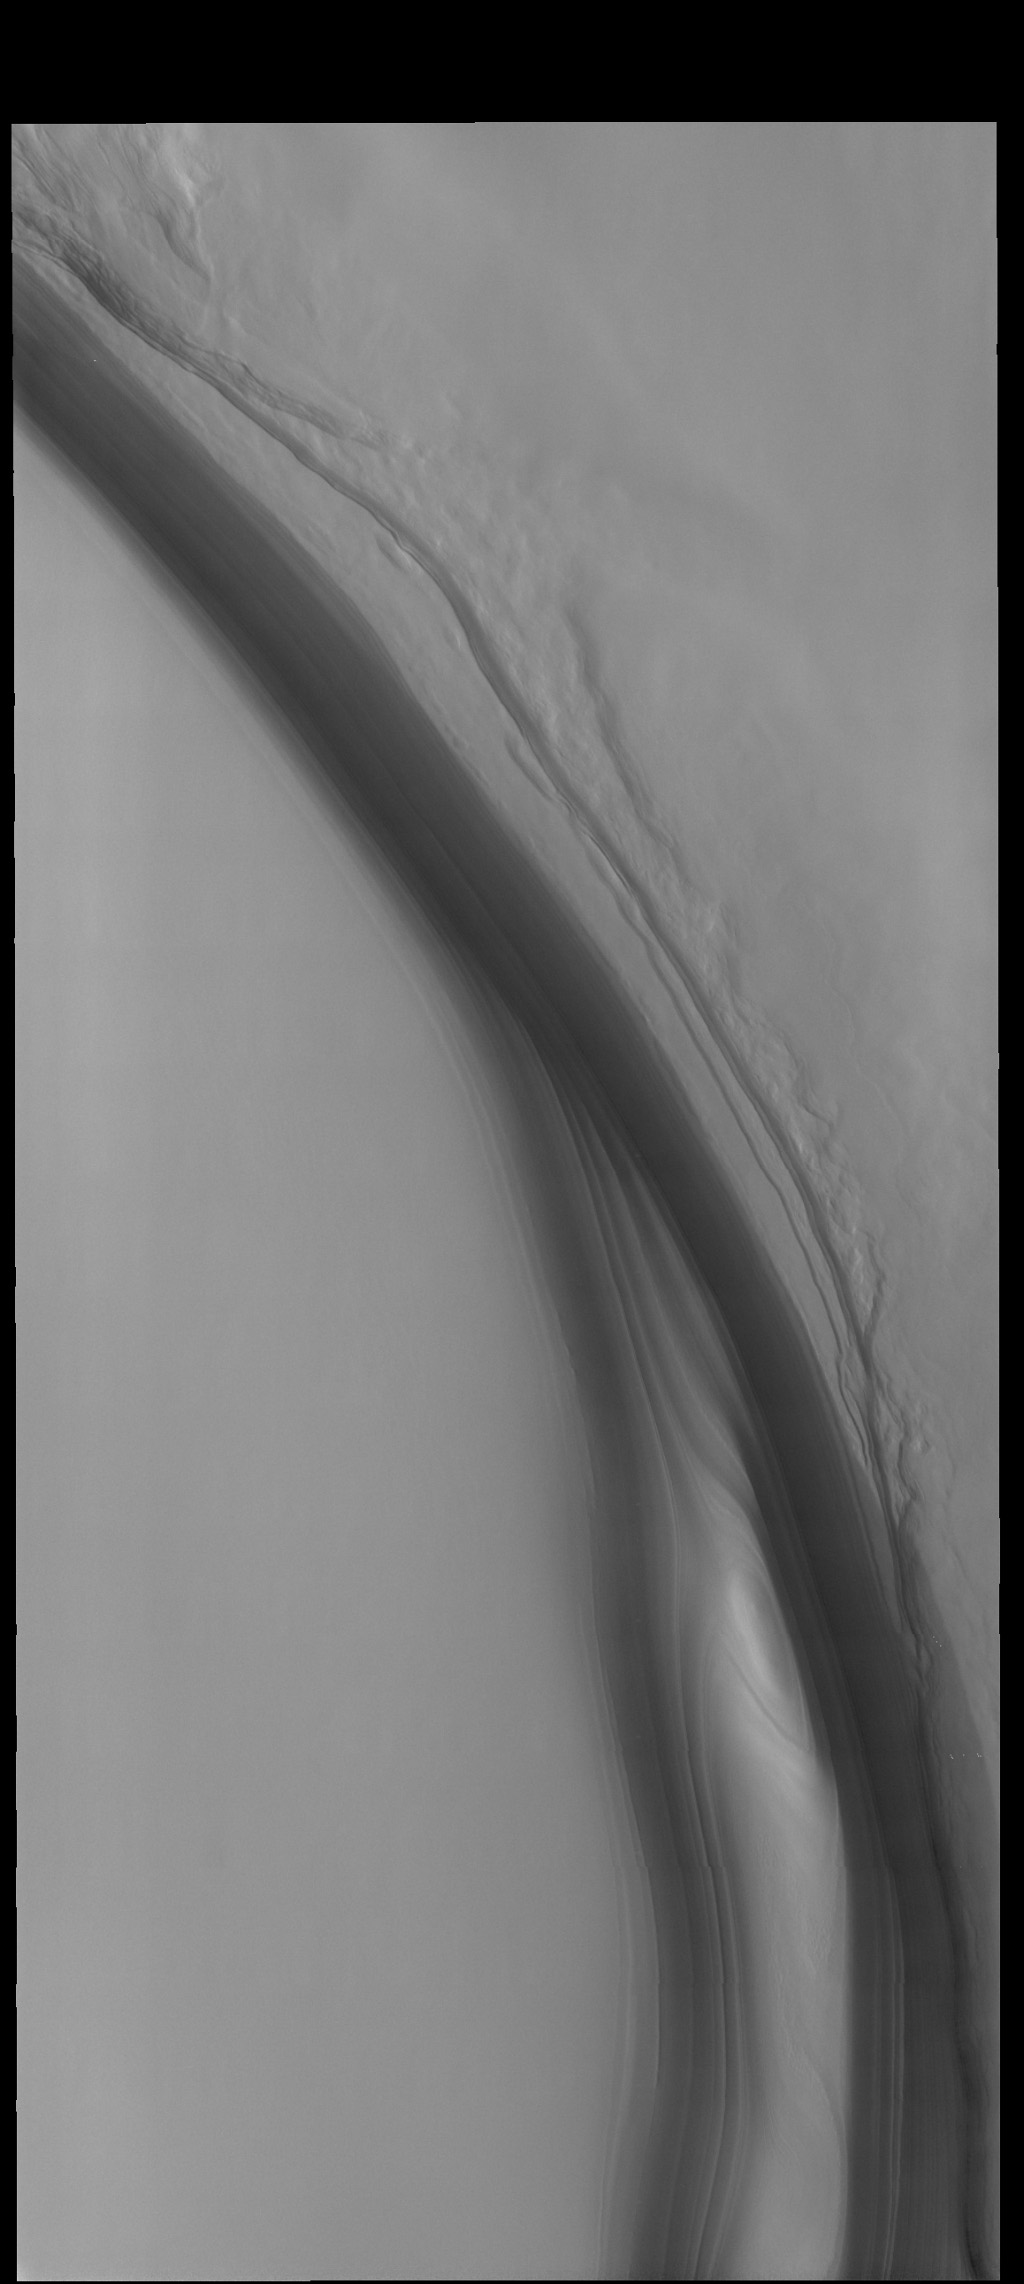 The steep feature in this image from NASA's 2001 Mars Odyssey spacecraft is the margin of the north polar cap, called Olympia Rupes.